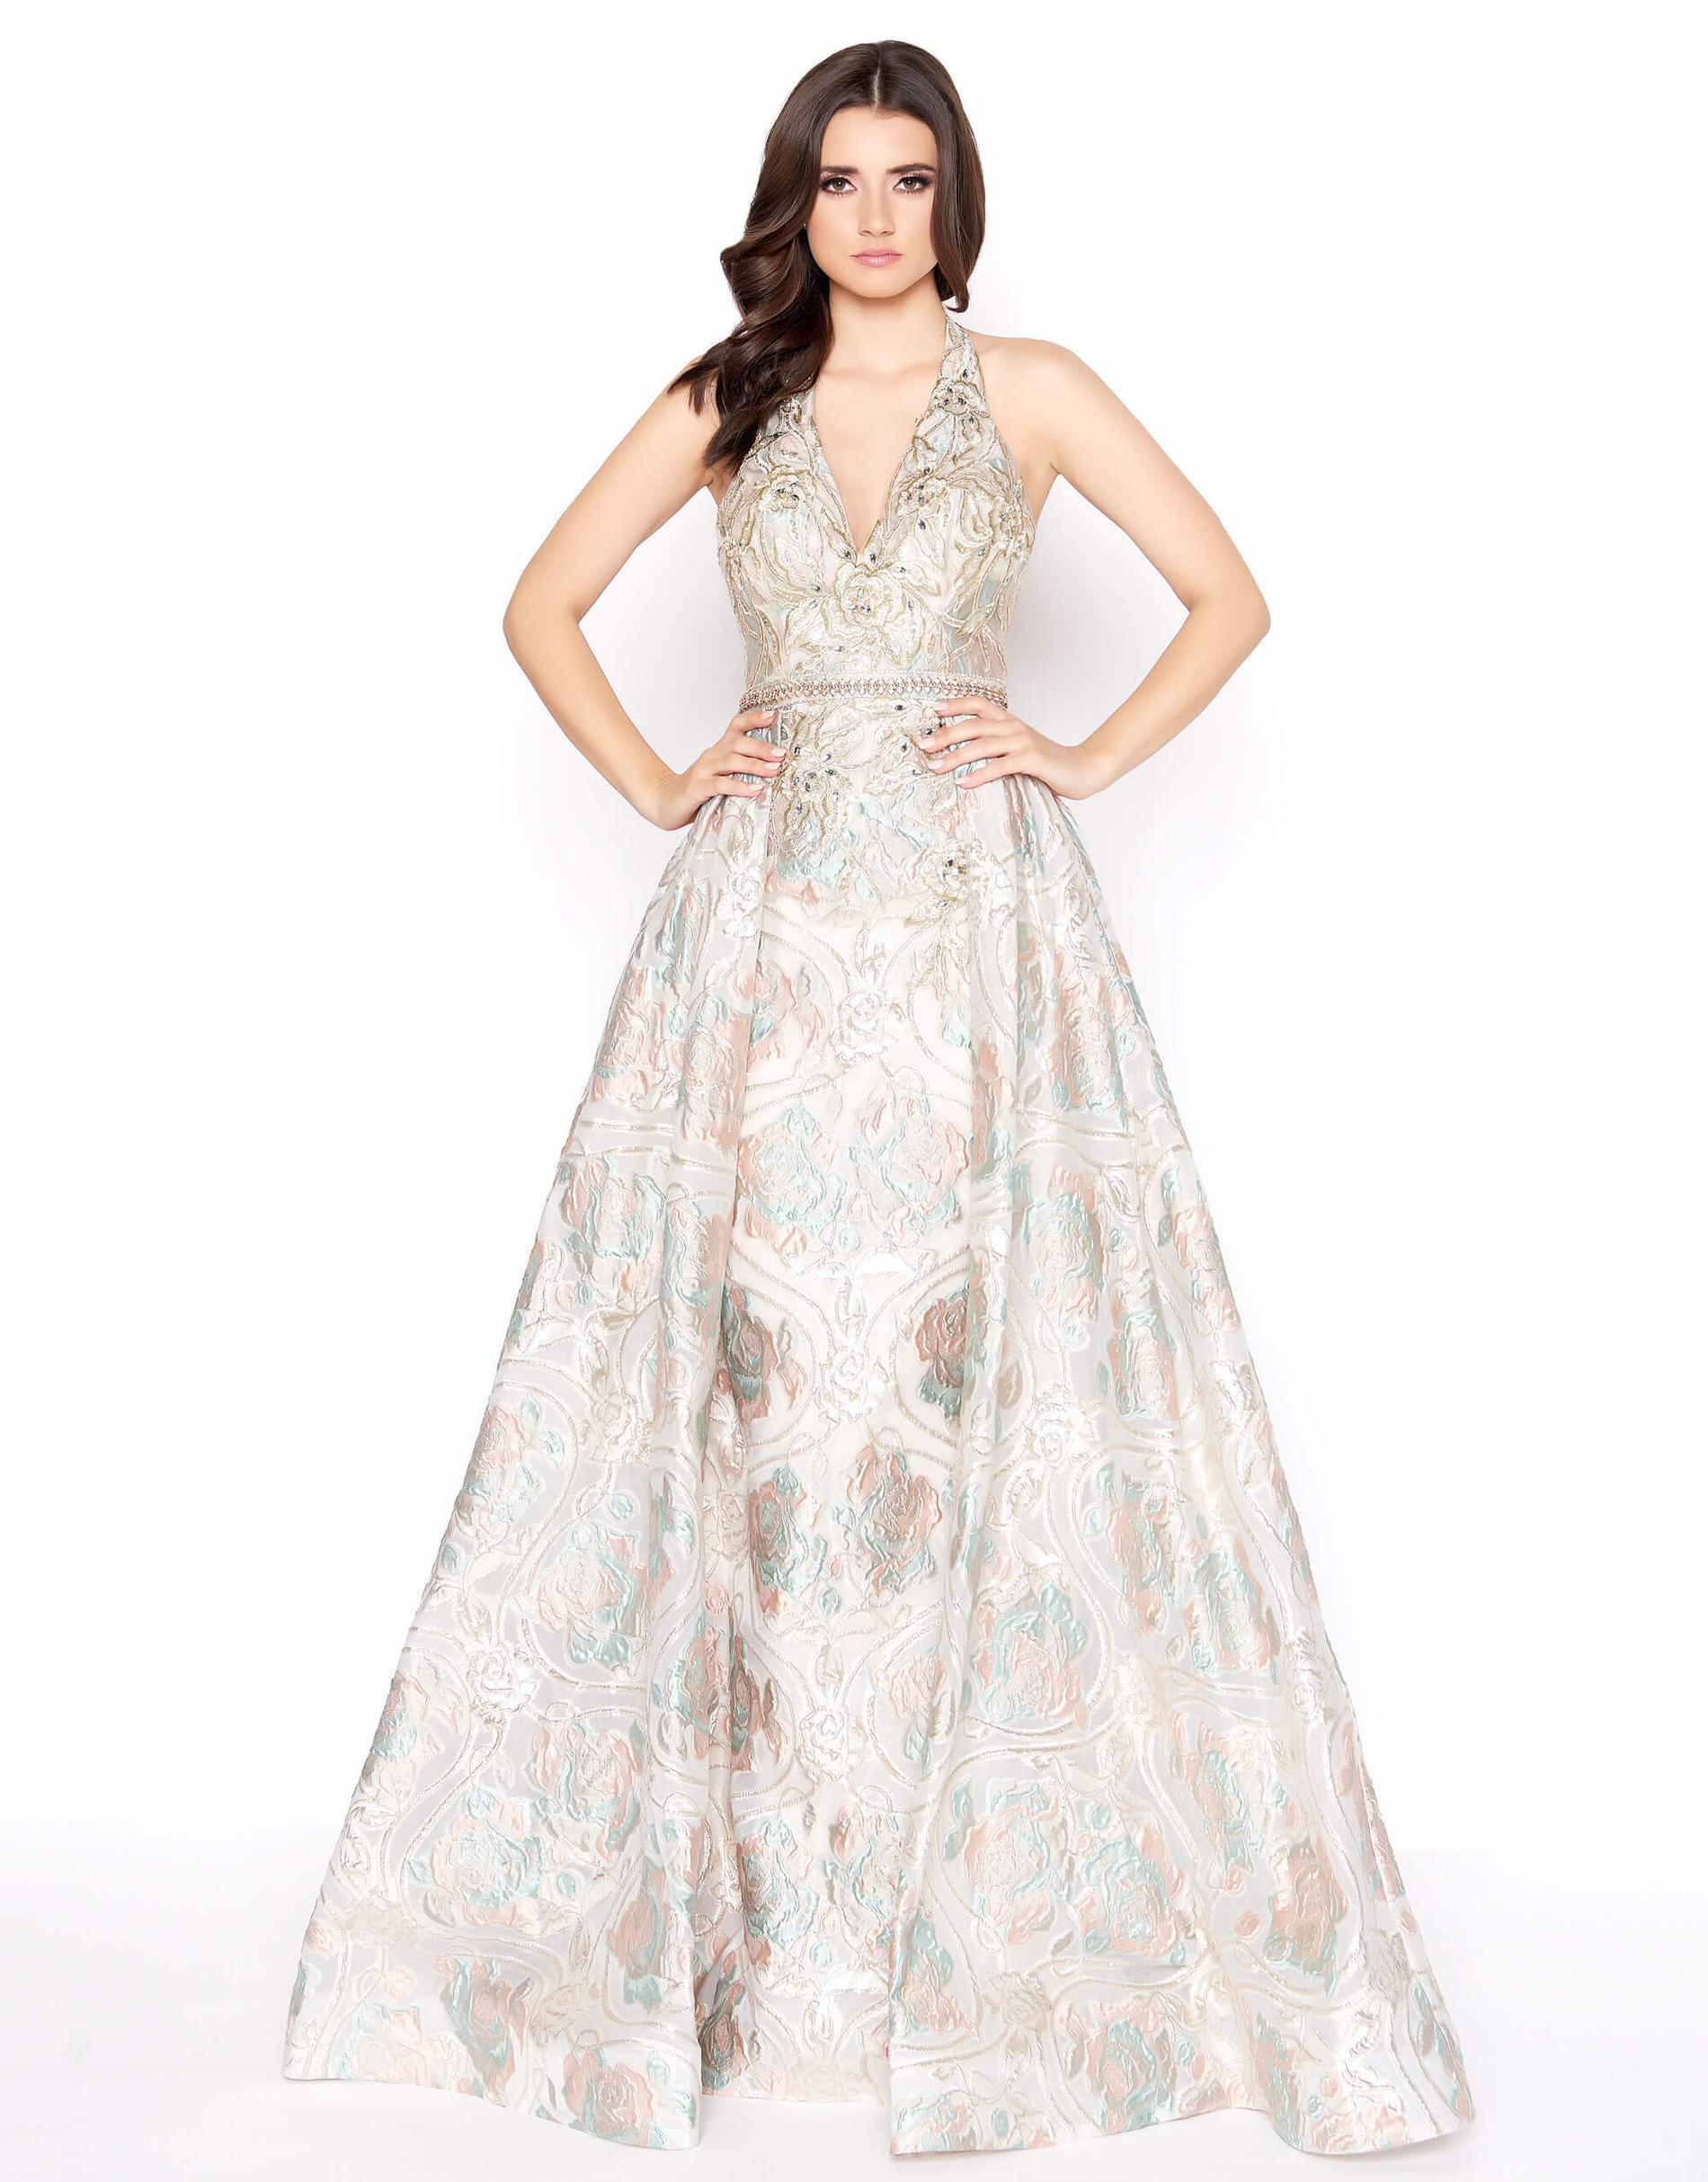 Style 79204 Mac Duggal Gold Size 6 Halter Tall Height A-line Dress on Queenly